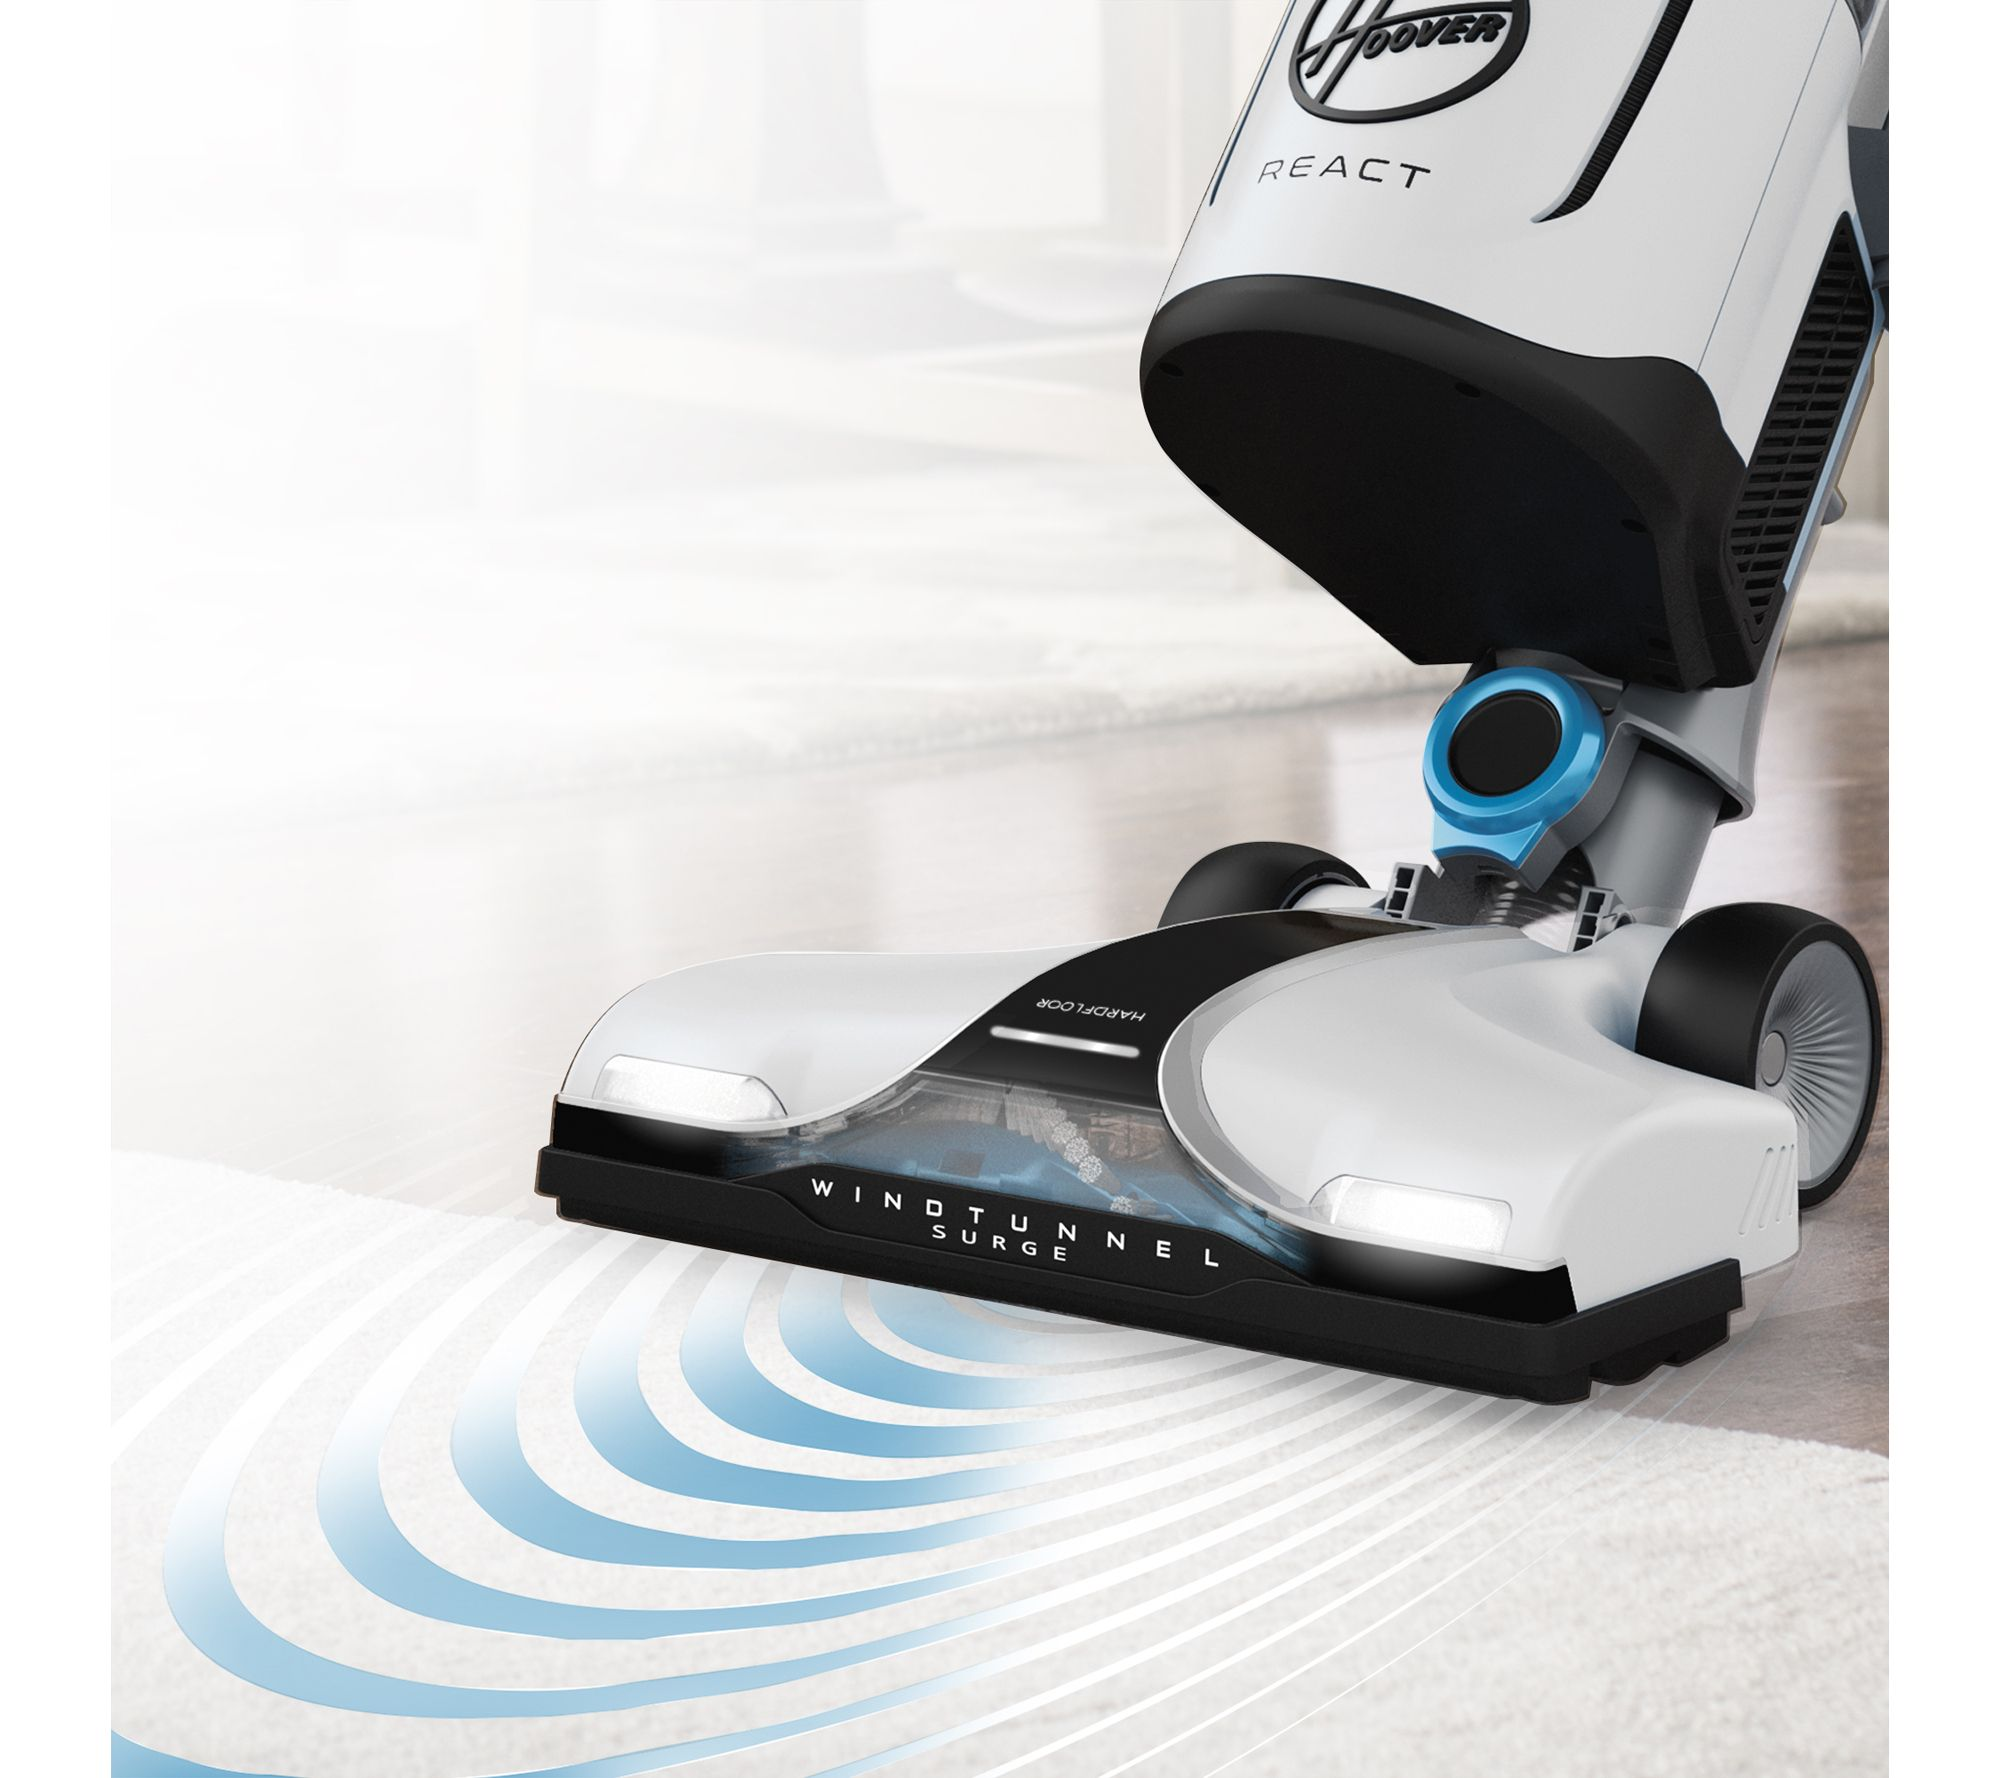 New customer qvc promo code - Hoover React Powered Reach Premier Pet 3 In 1 Upright Vacuum Page 1 Qvc Com